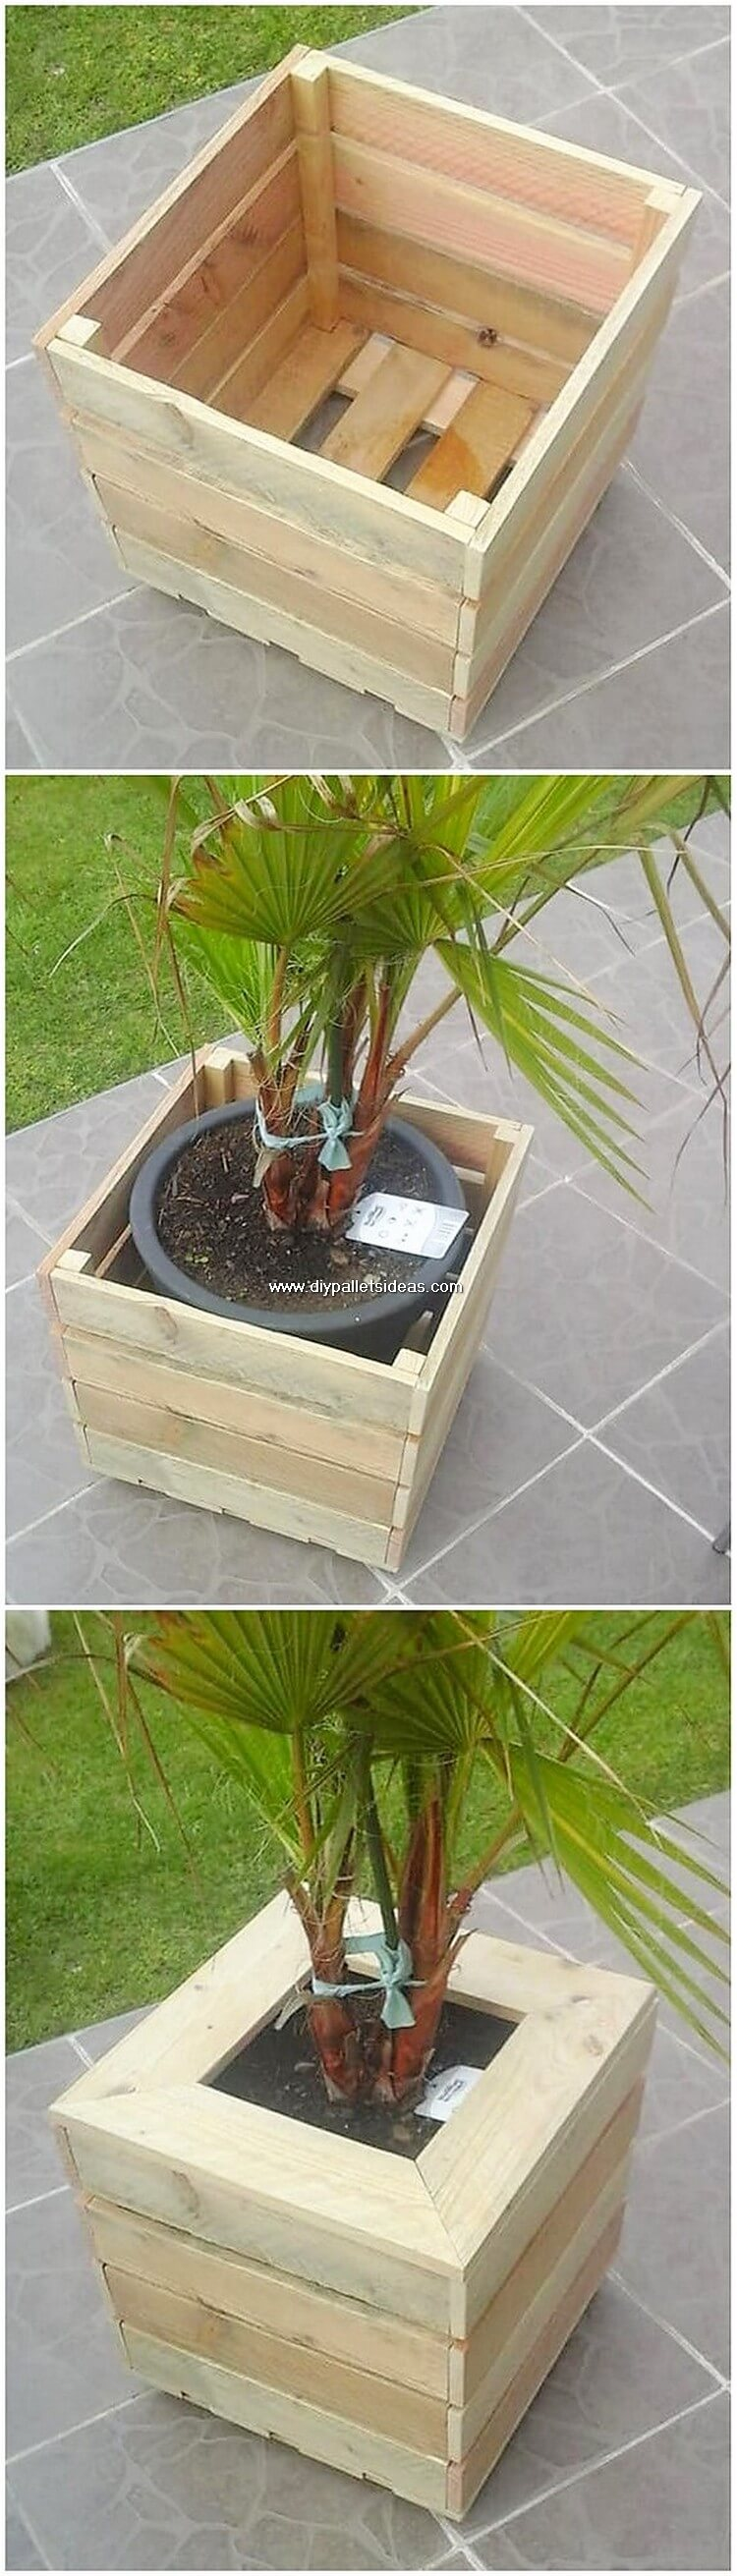 Wood Pallet Planter Box